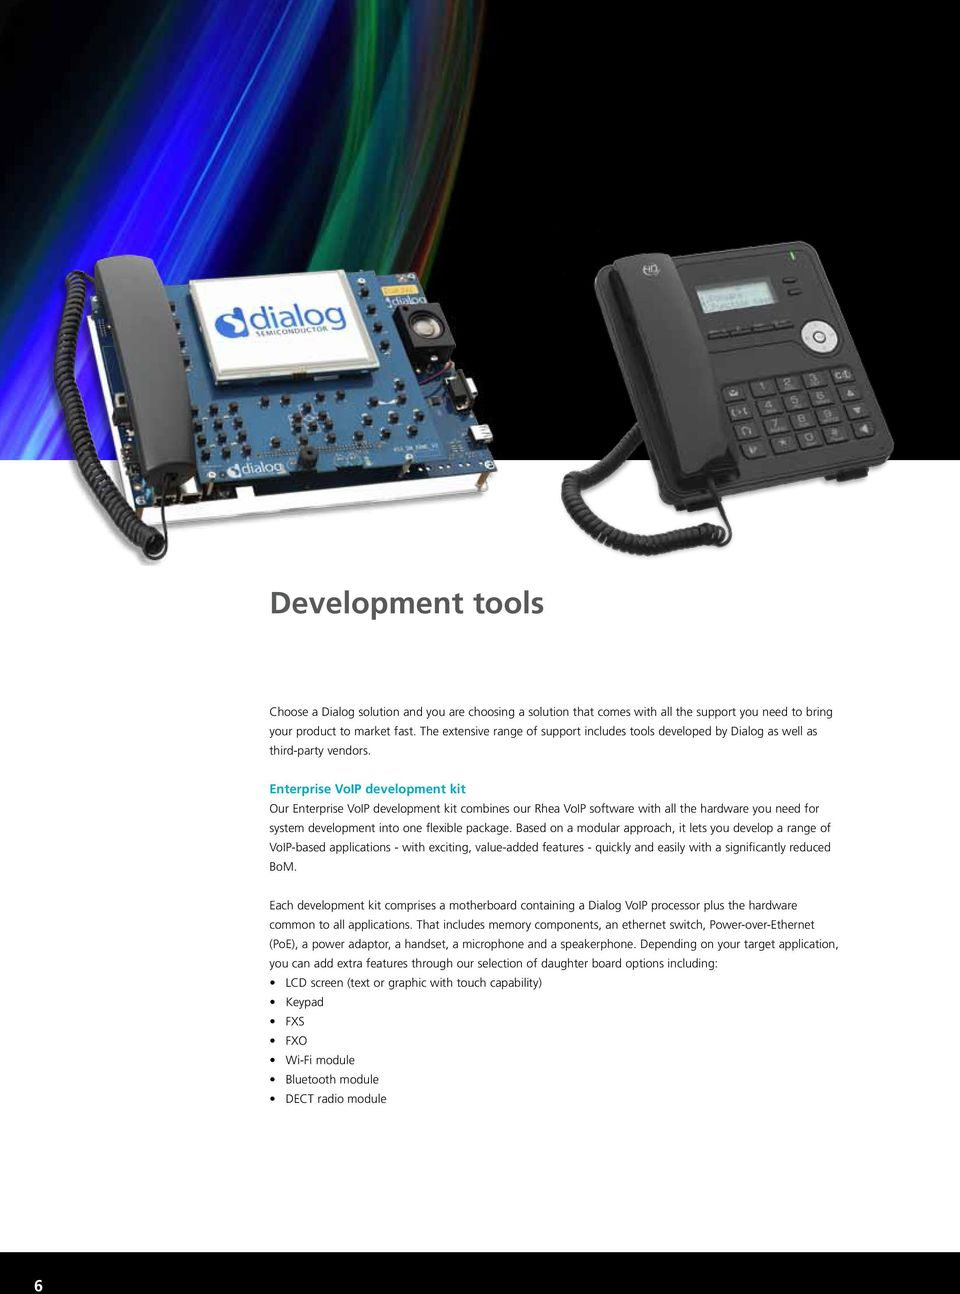 Enterprise VoIP development kit Our Enterprise VoIP development kit combines our Rhea VoIP software with all the hardware you need for system development into one flexible package.